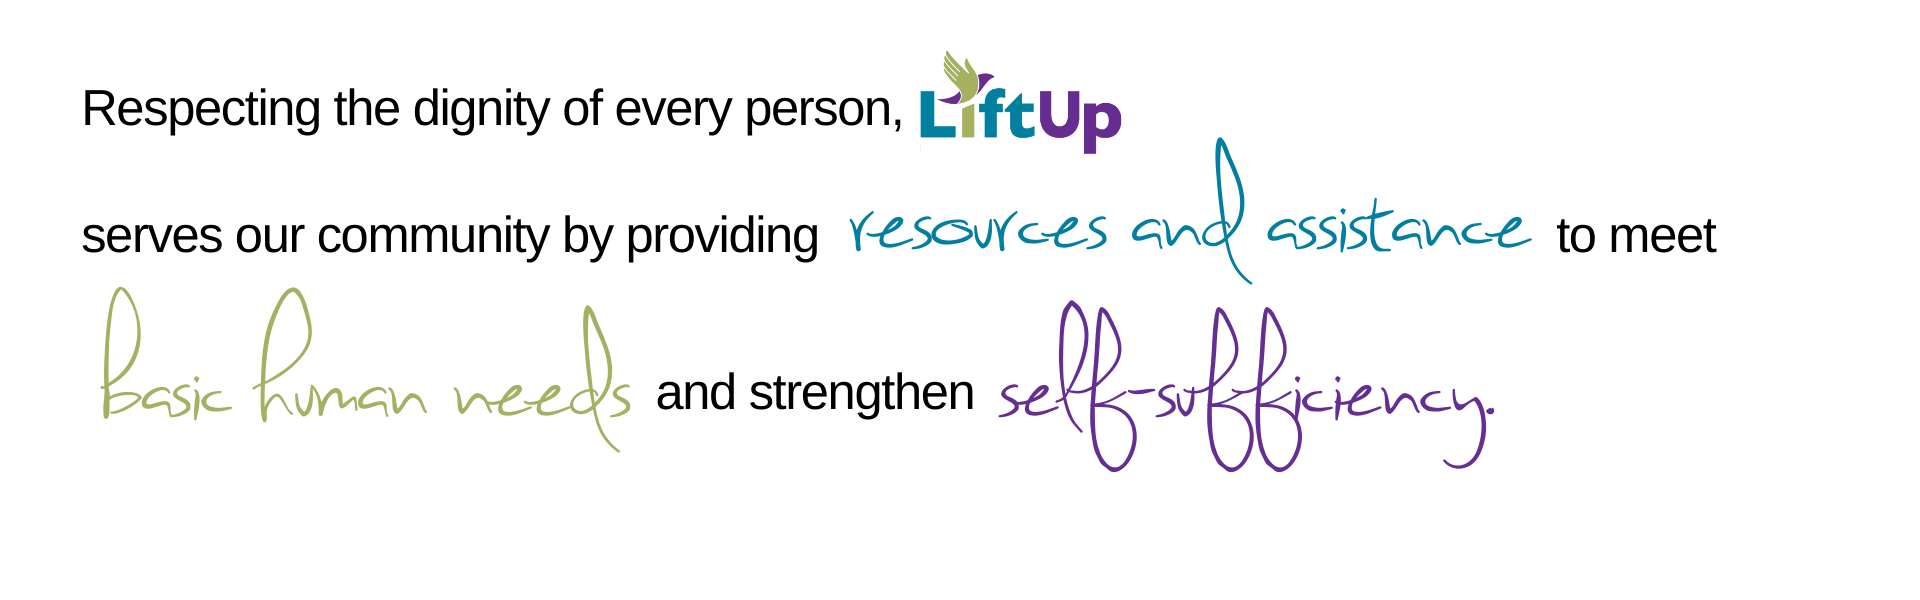 LiftUp Mission Graphic